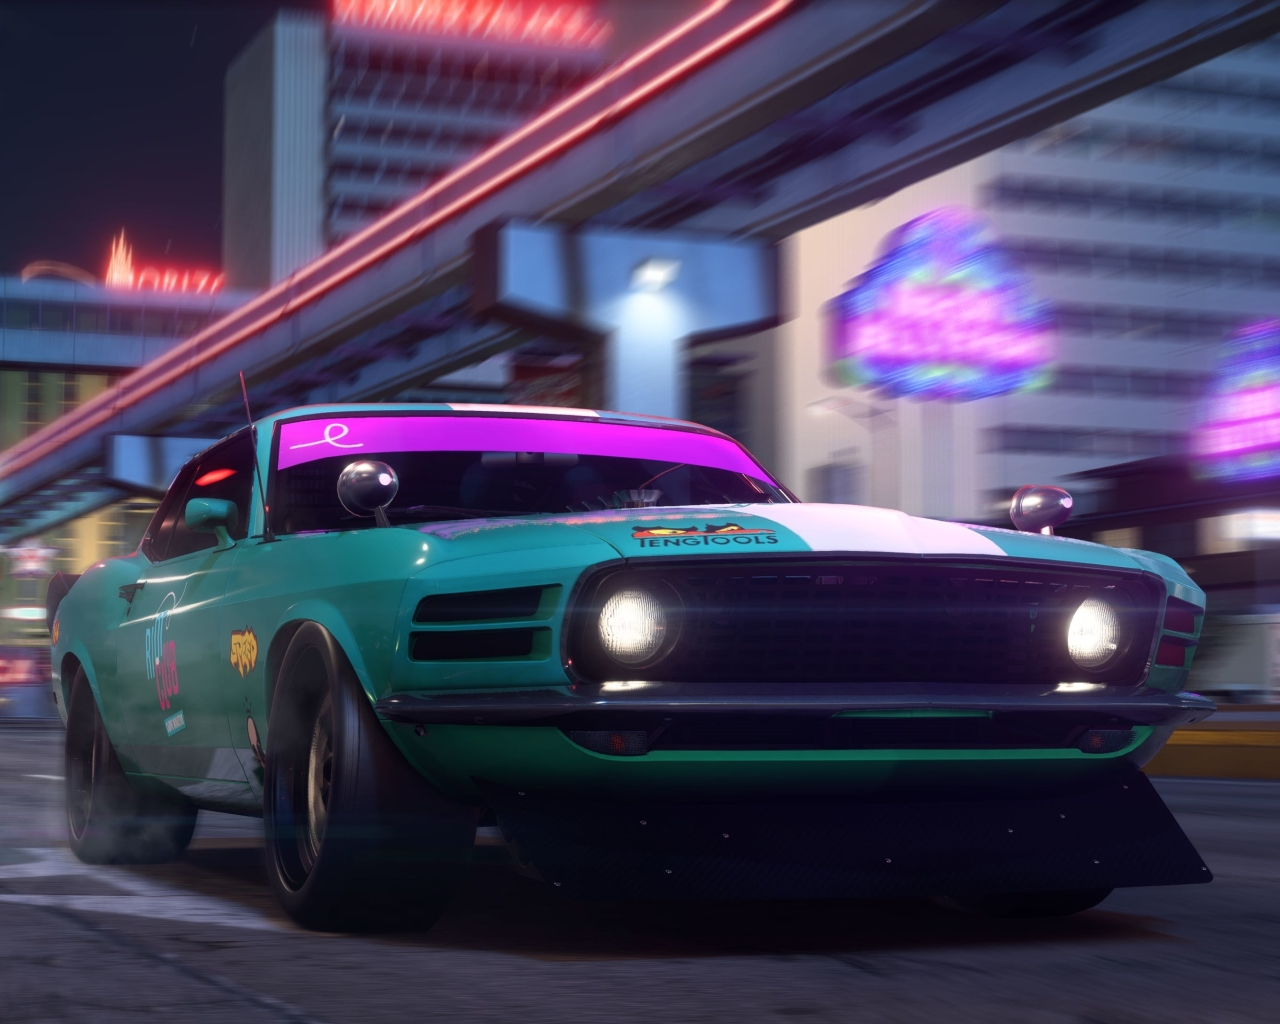 Riot club street leagues need for speed payback 2017 hd 4k wallpaper - Speed wallpaper ...